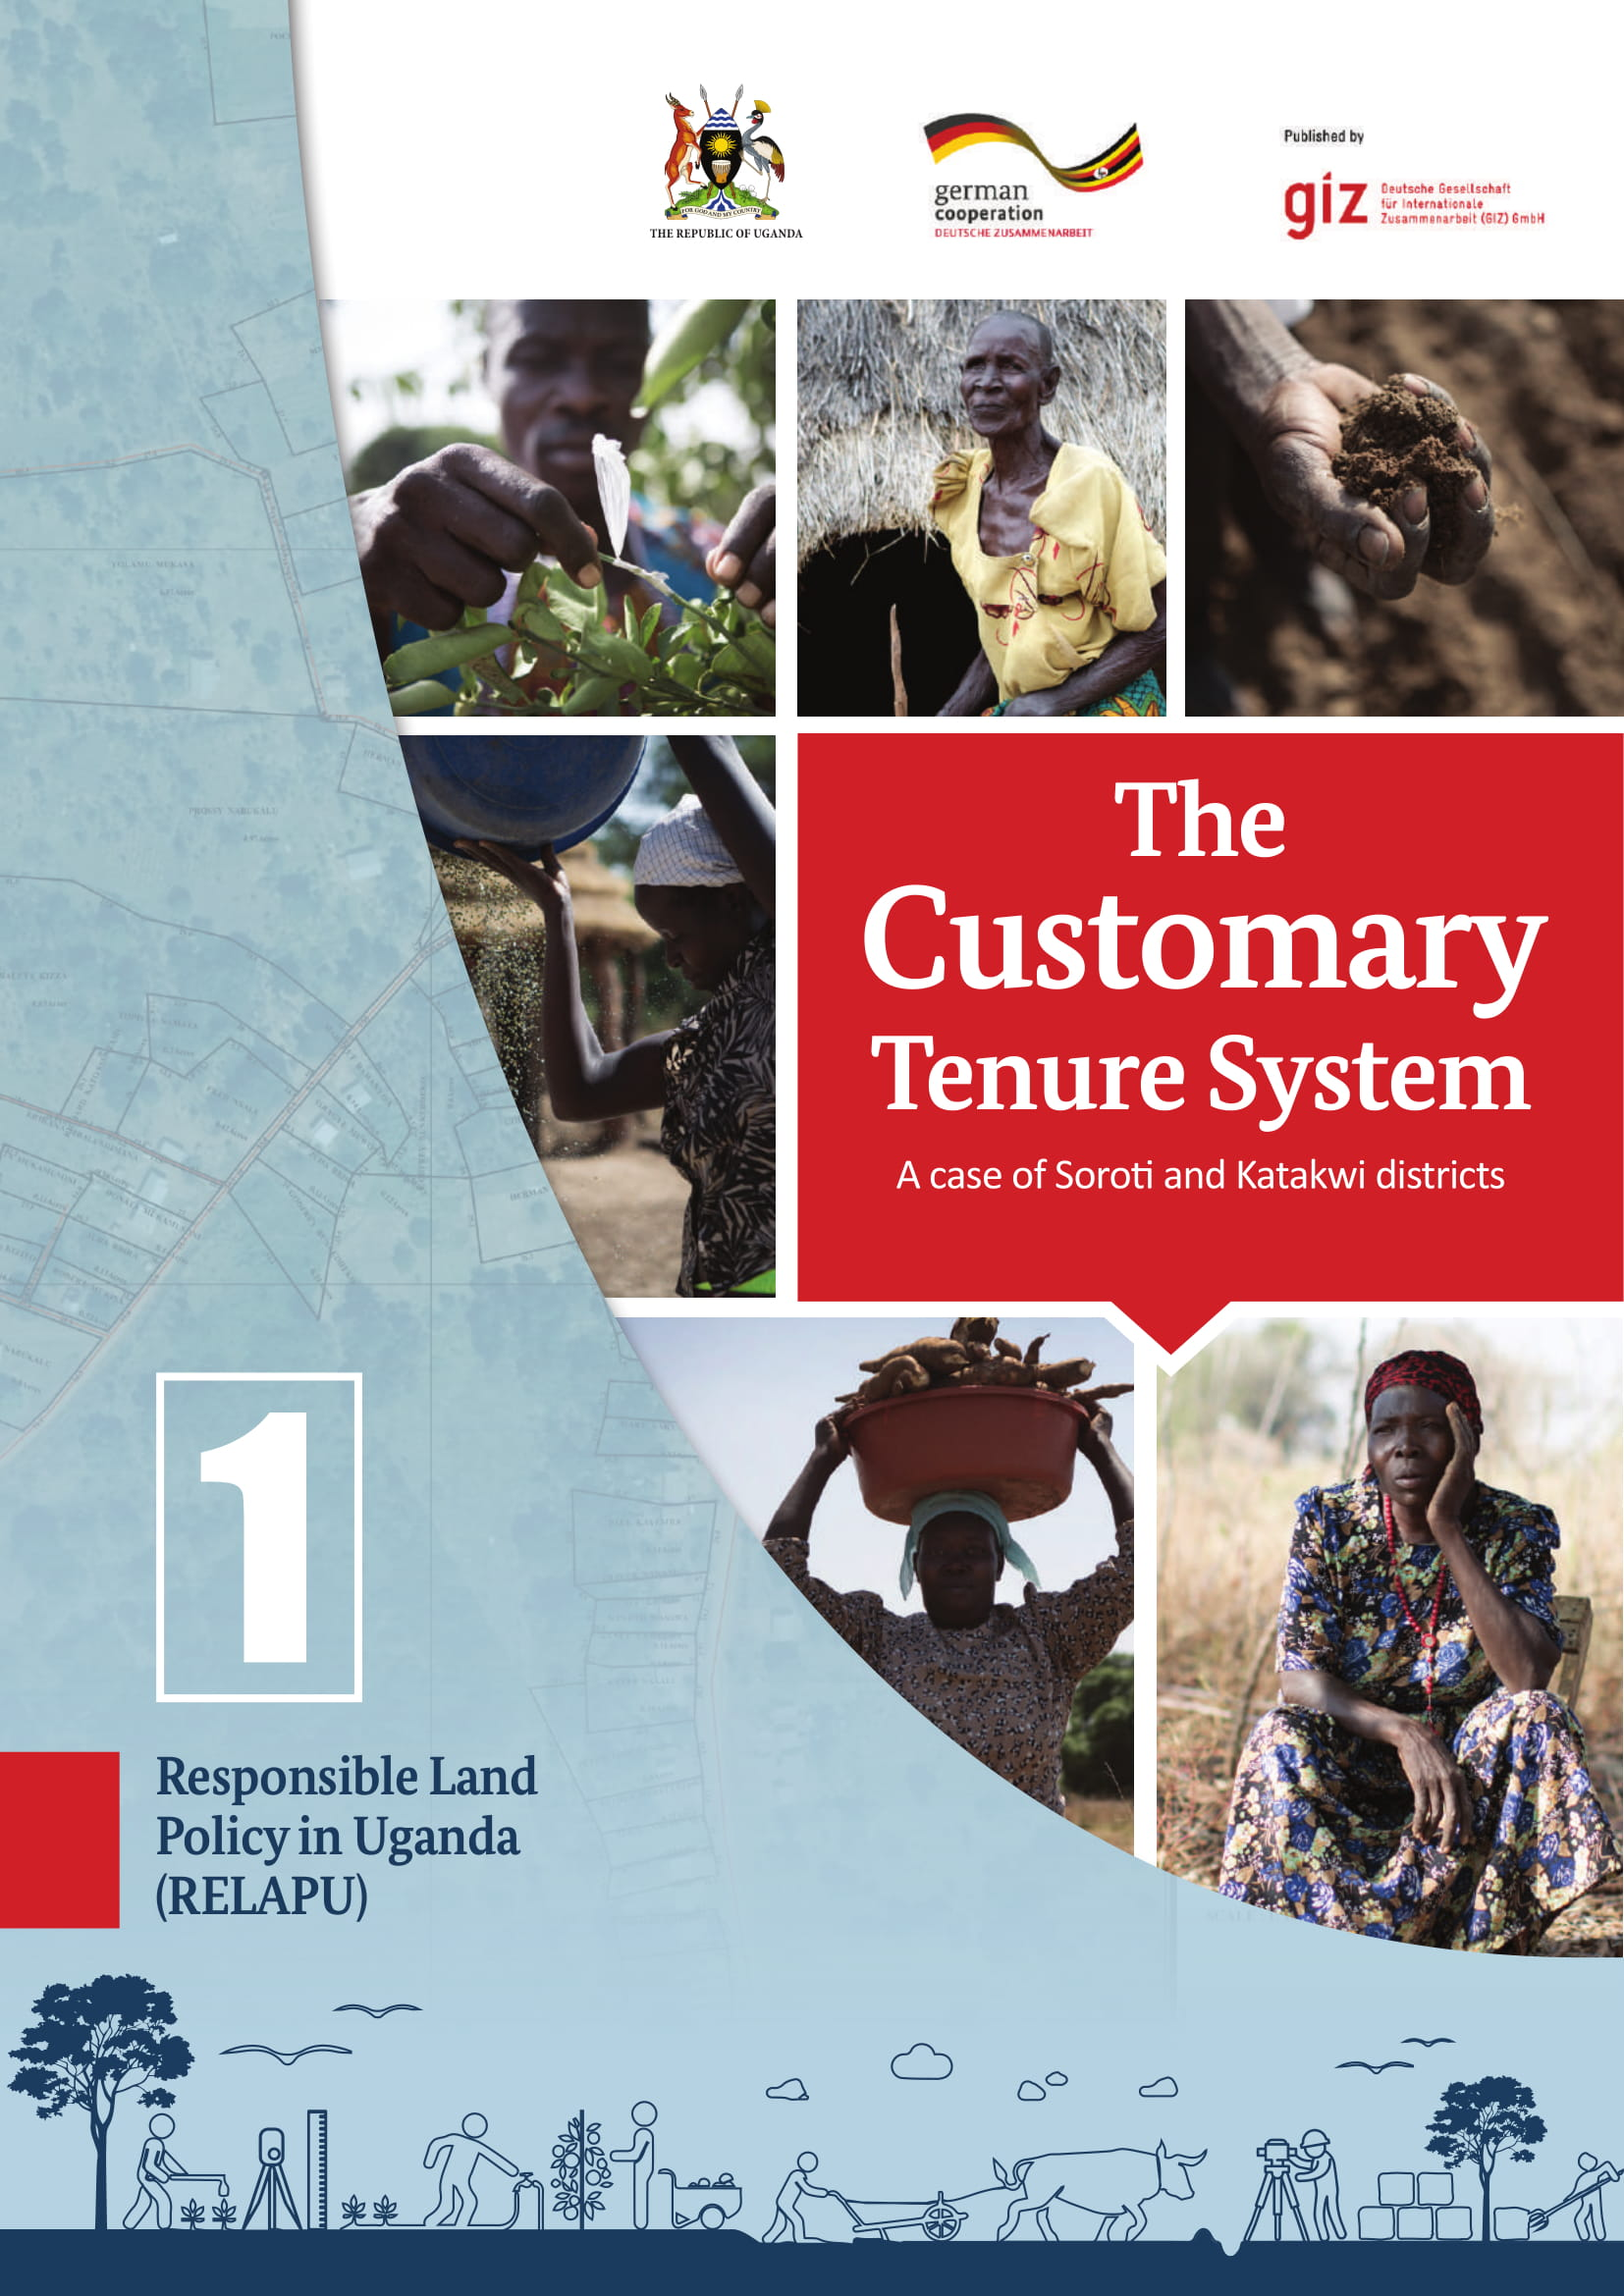 The customary tenure system in Uganda. A case of Soroti and Katakwi districs